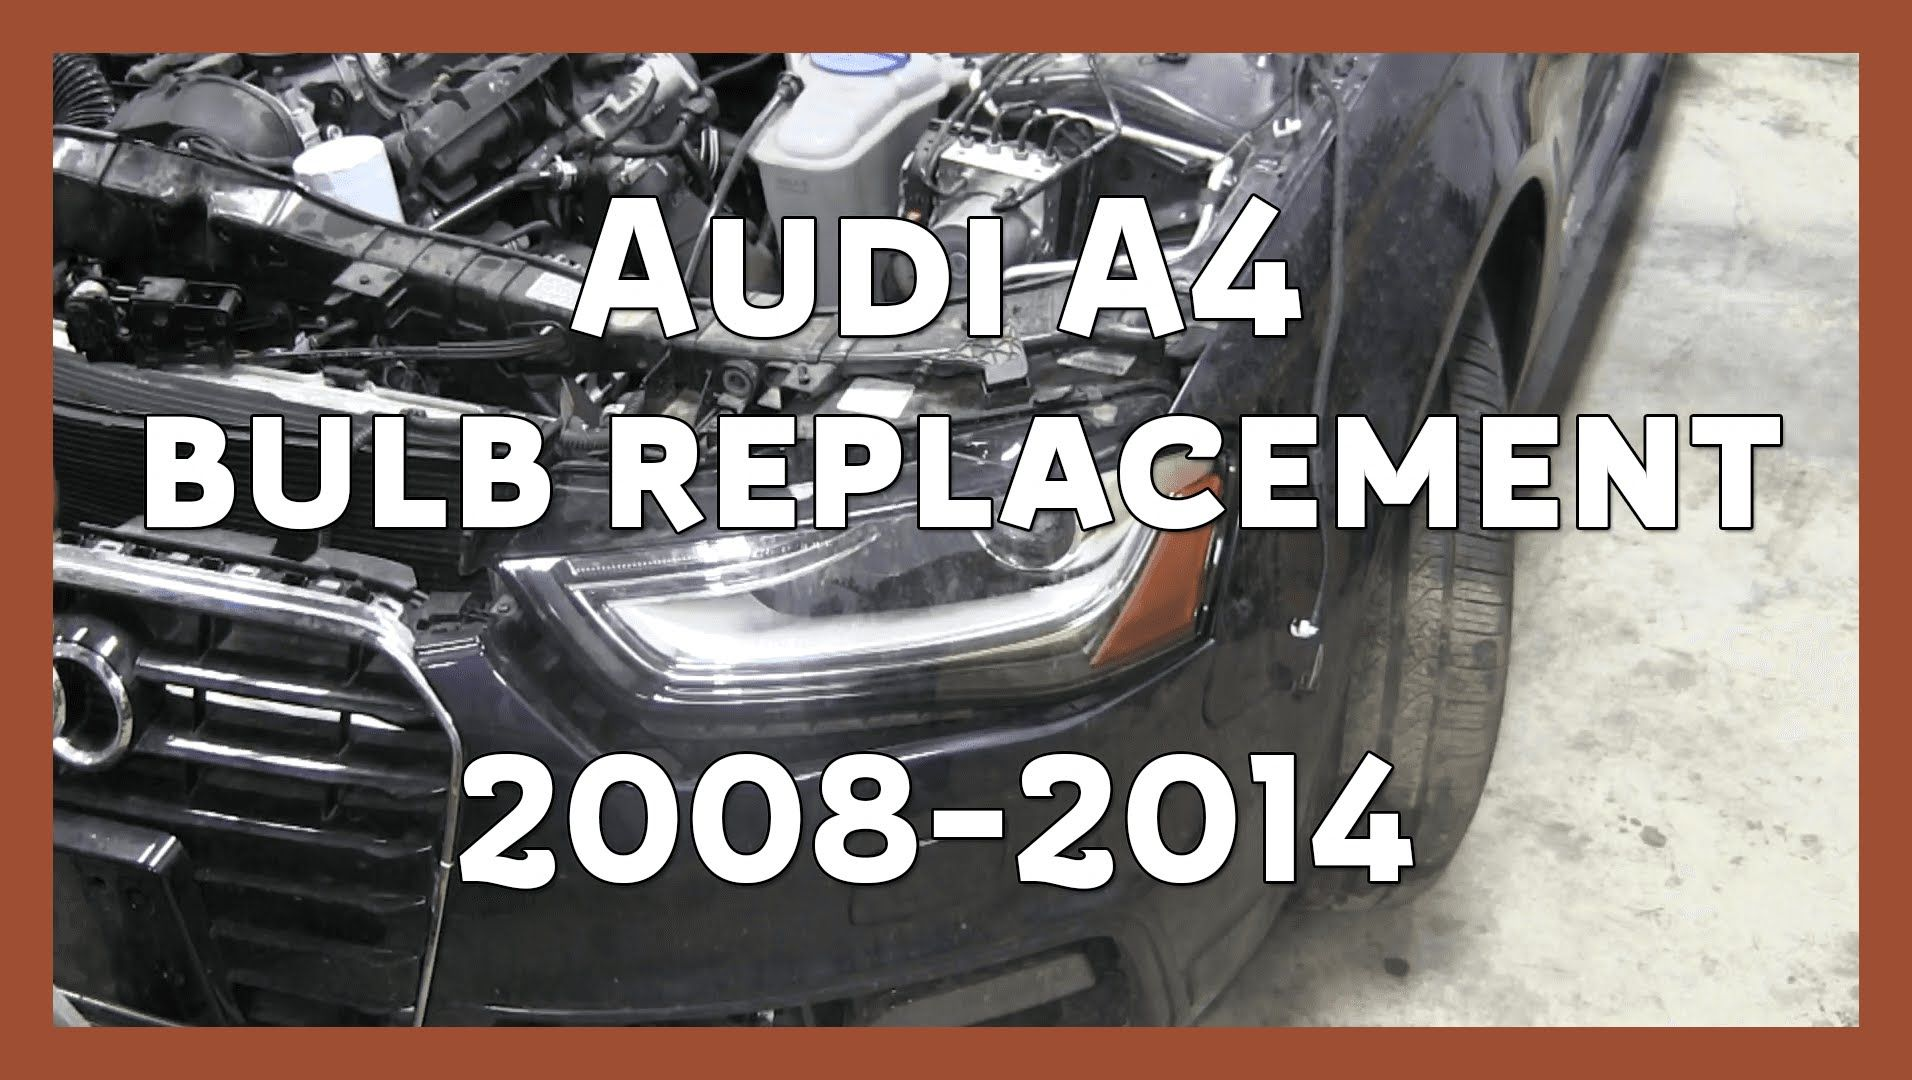 Audi A4 Headlight Bulb Replacement 2008 2014 B8 B8 5 Headlight Bulb Replacement Audi A4 Headlight Bulbs